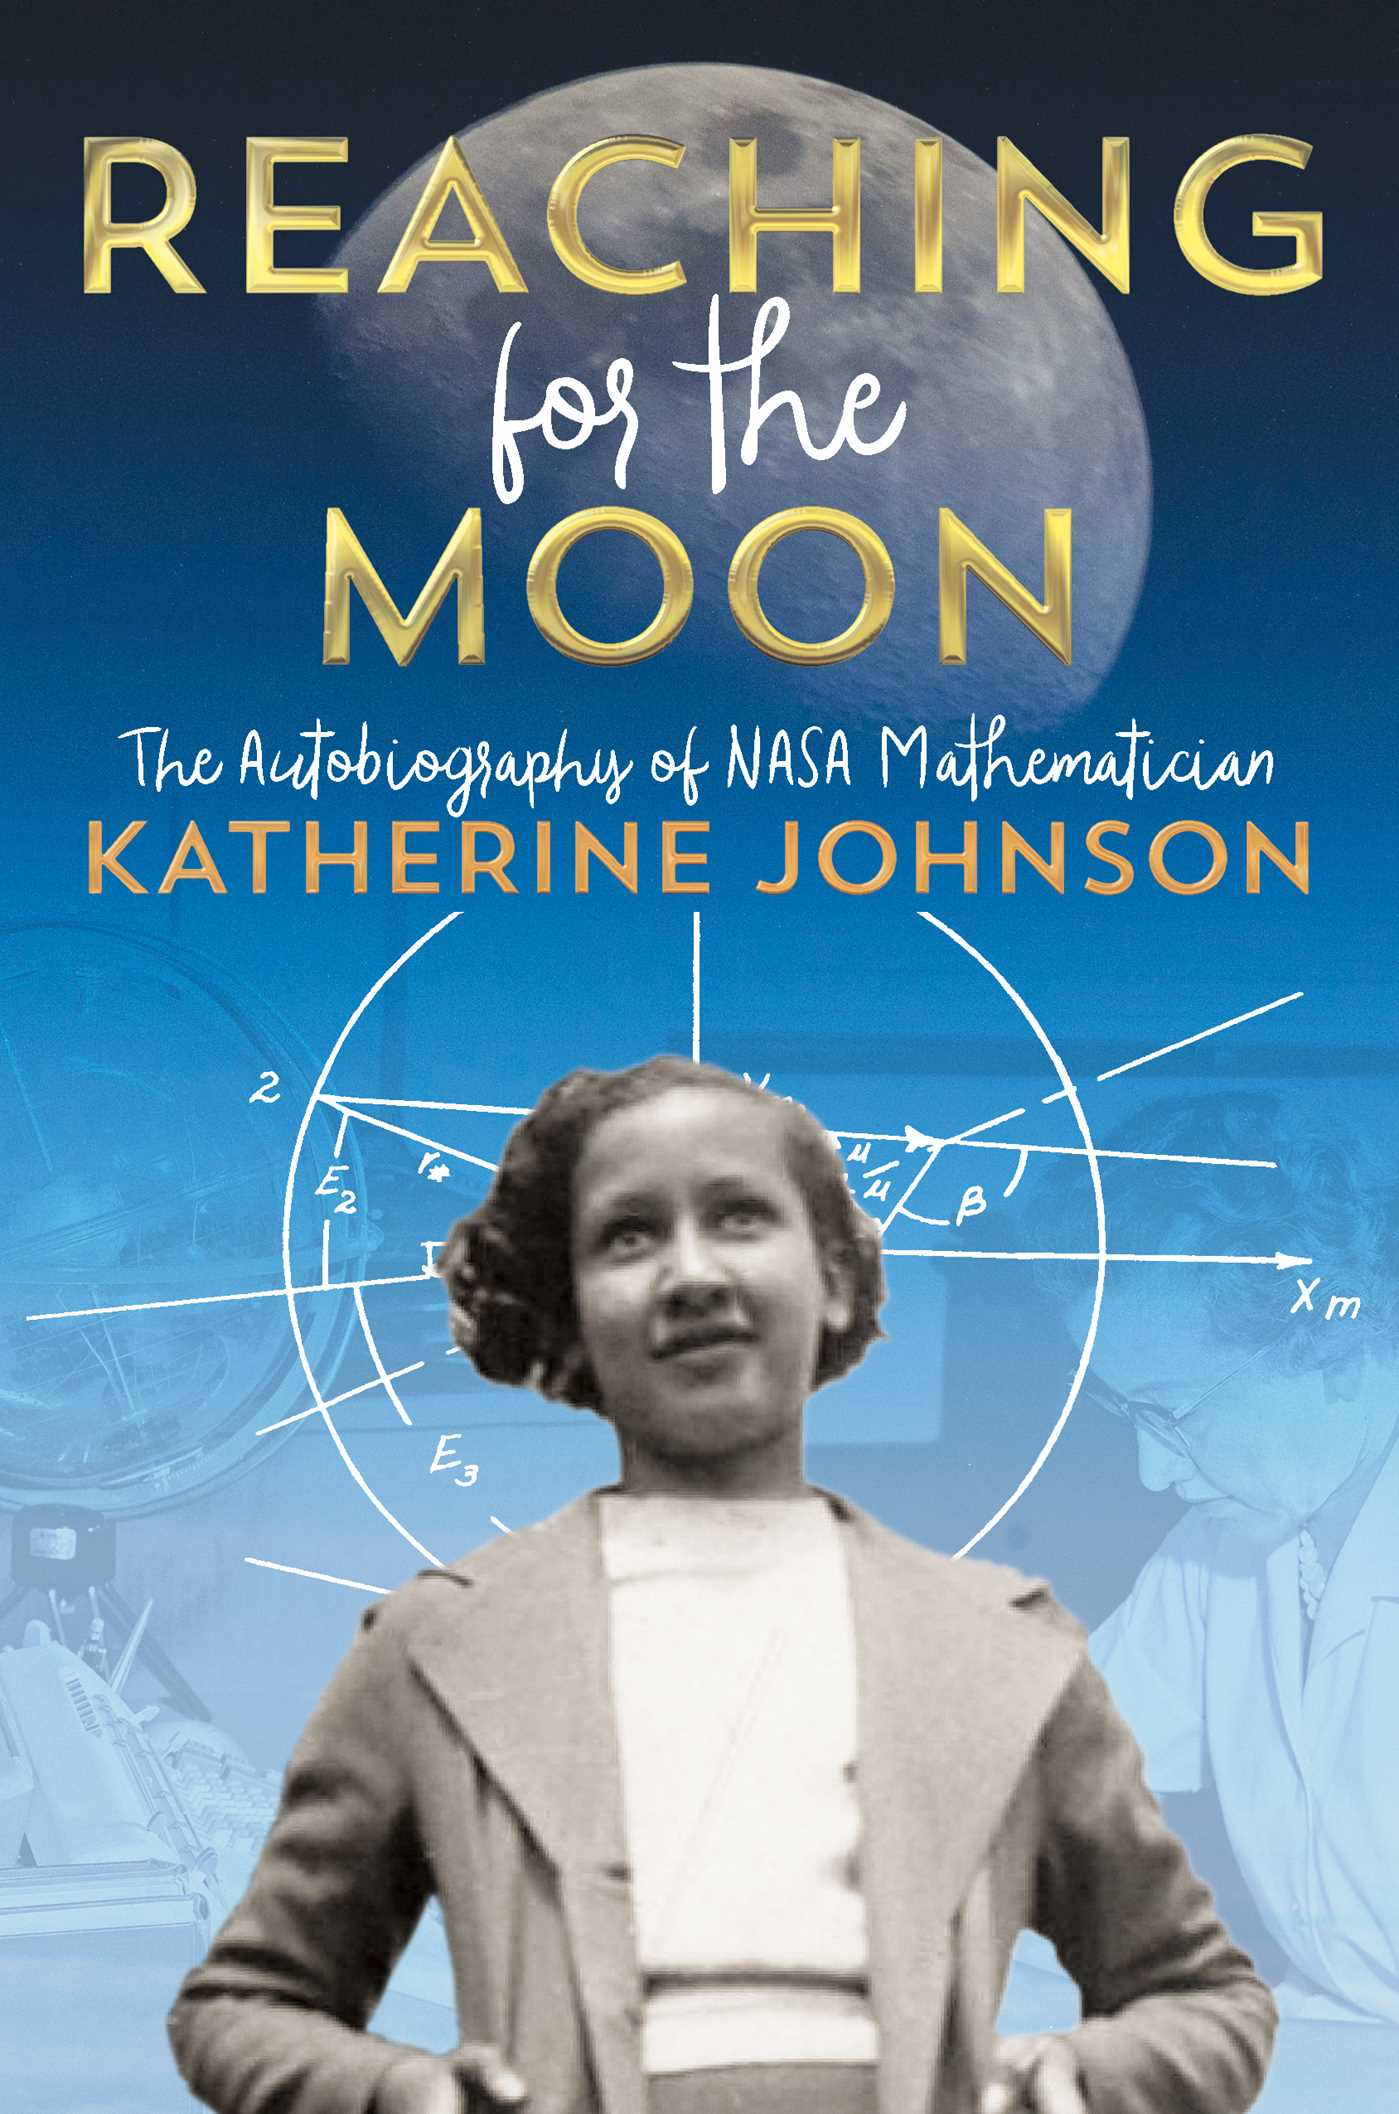 Reaching for the Moon The Autobiography of NASA Mathematician Katherine Johnson